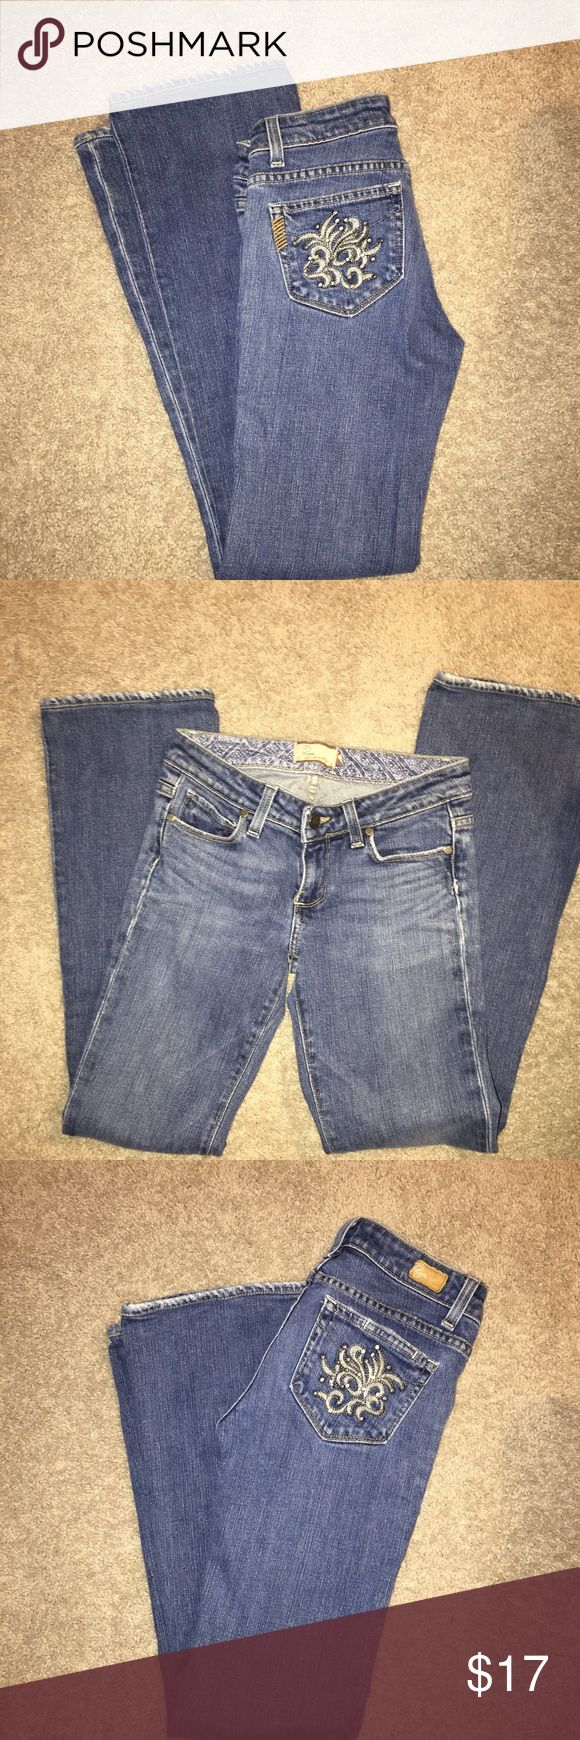 """Paige Jeans Size 25 Hollywood Hills style Paige jeans. The inseam is 31"""". These jeans have been well cared for. Paige Jeans Jeans Straight Leg"""